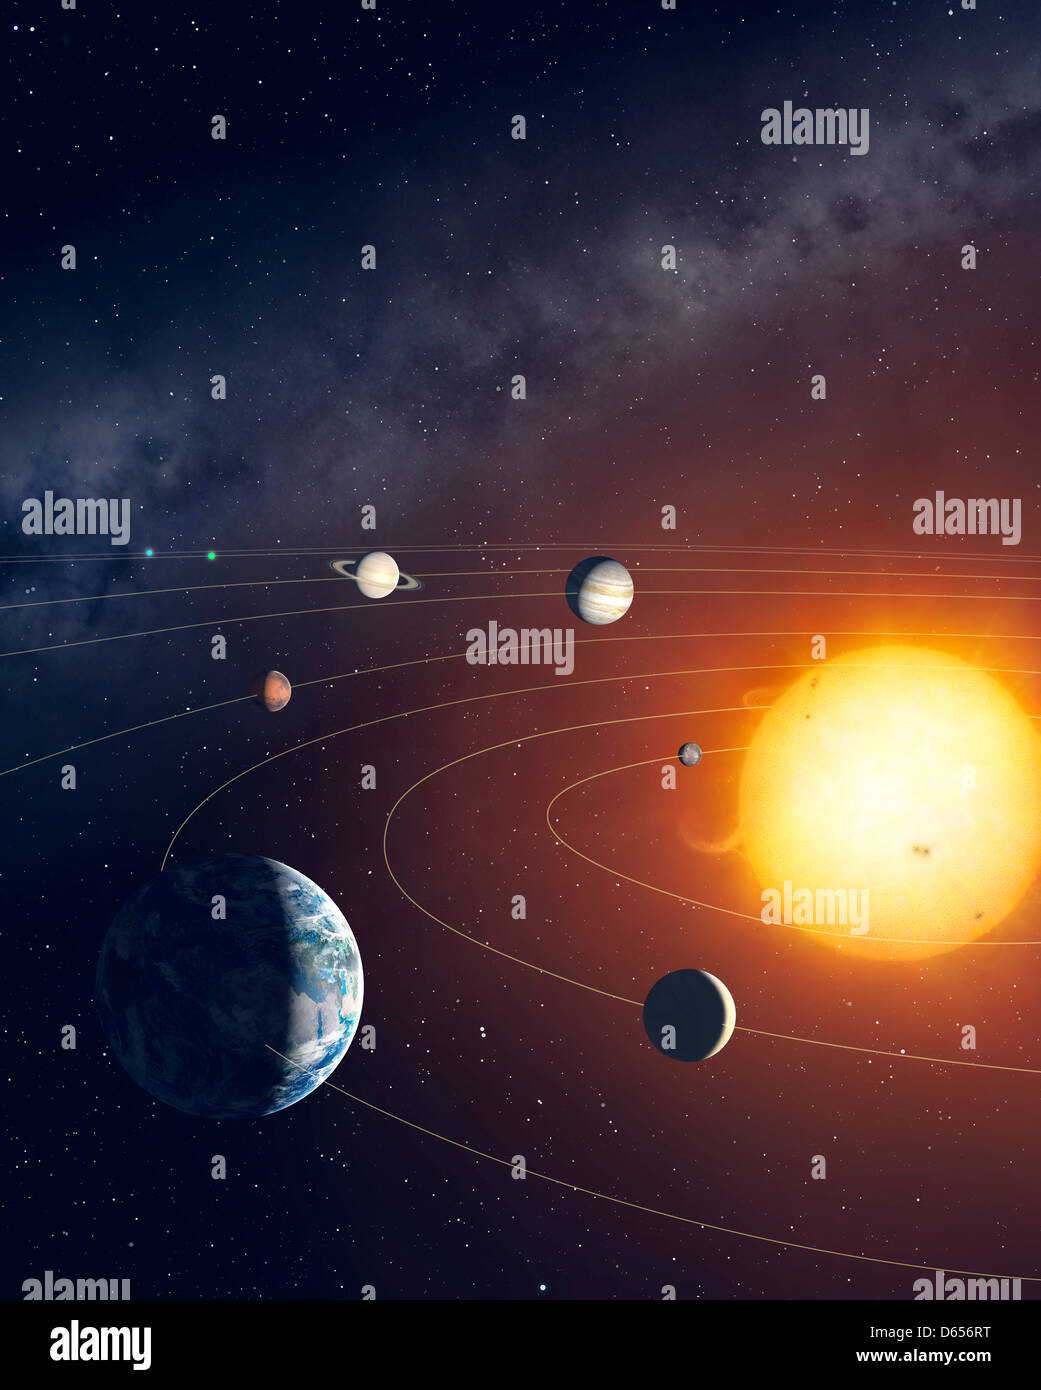 Orbits of planets in the Solar System - Stock Image